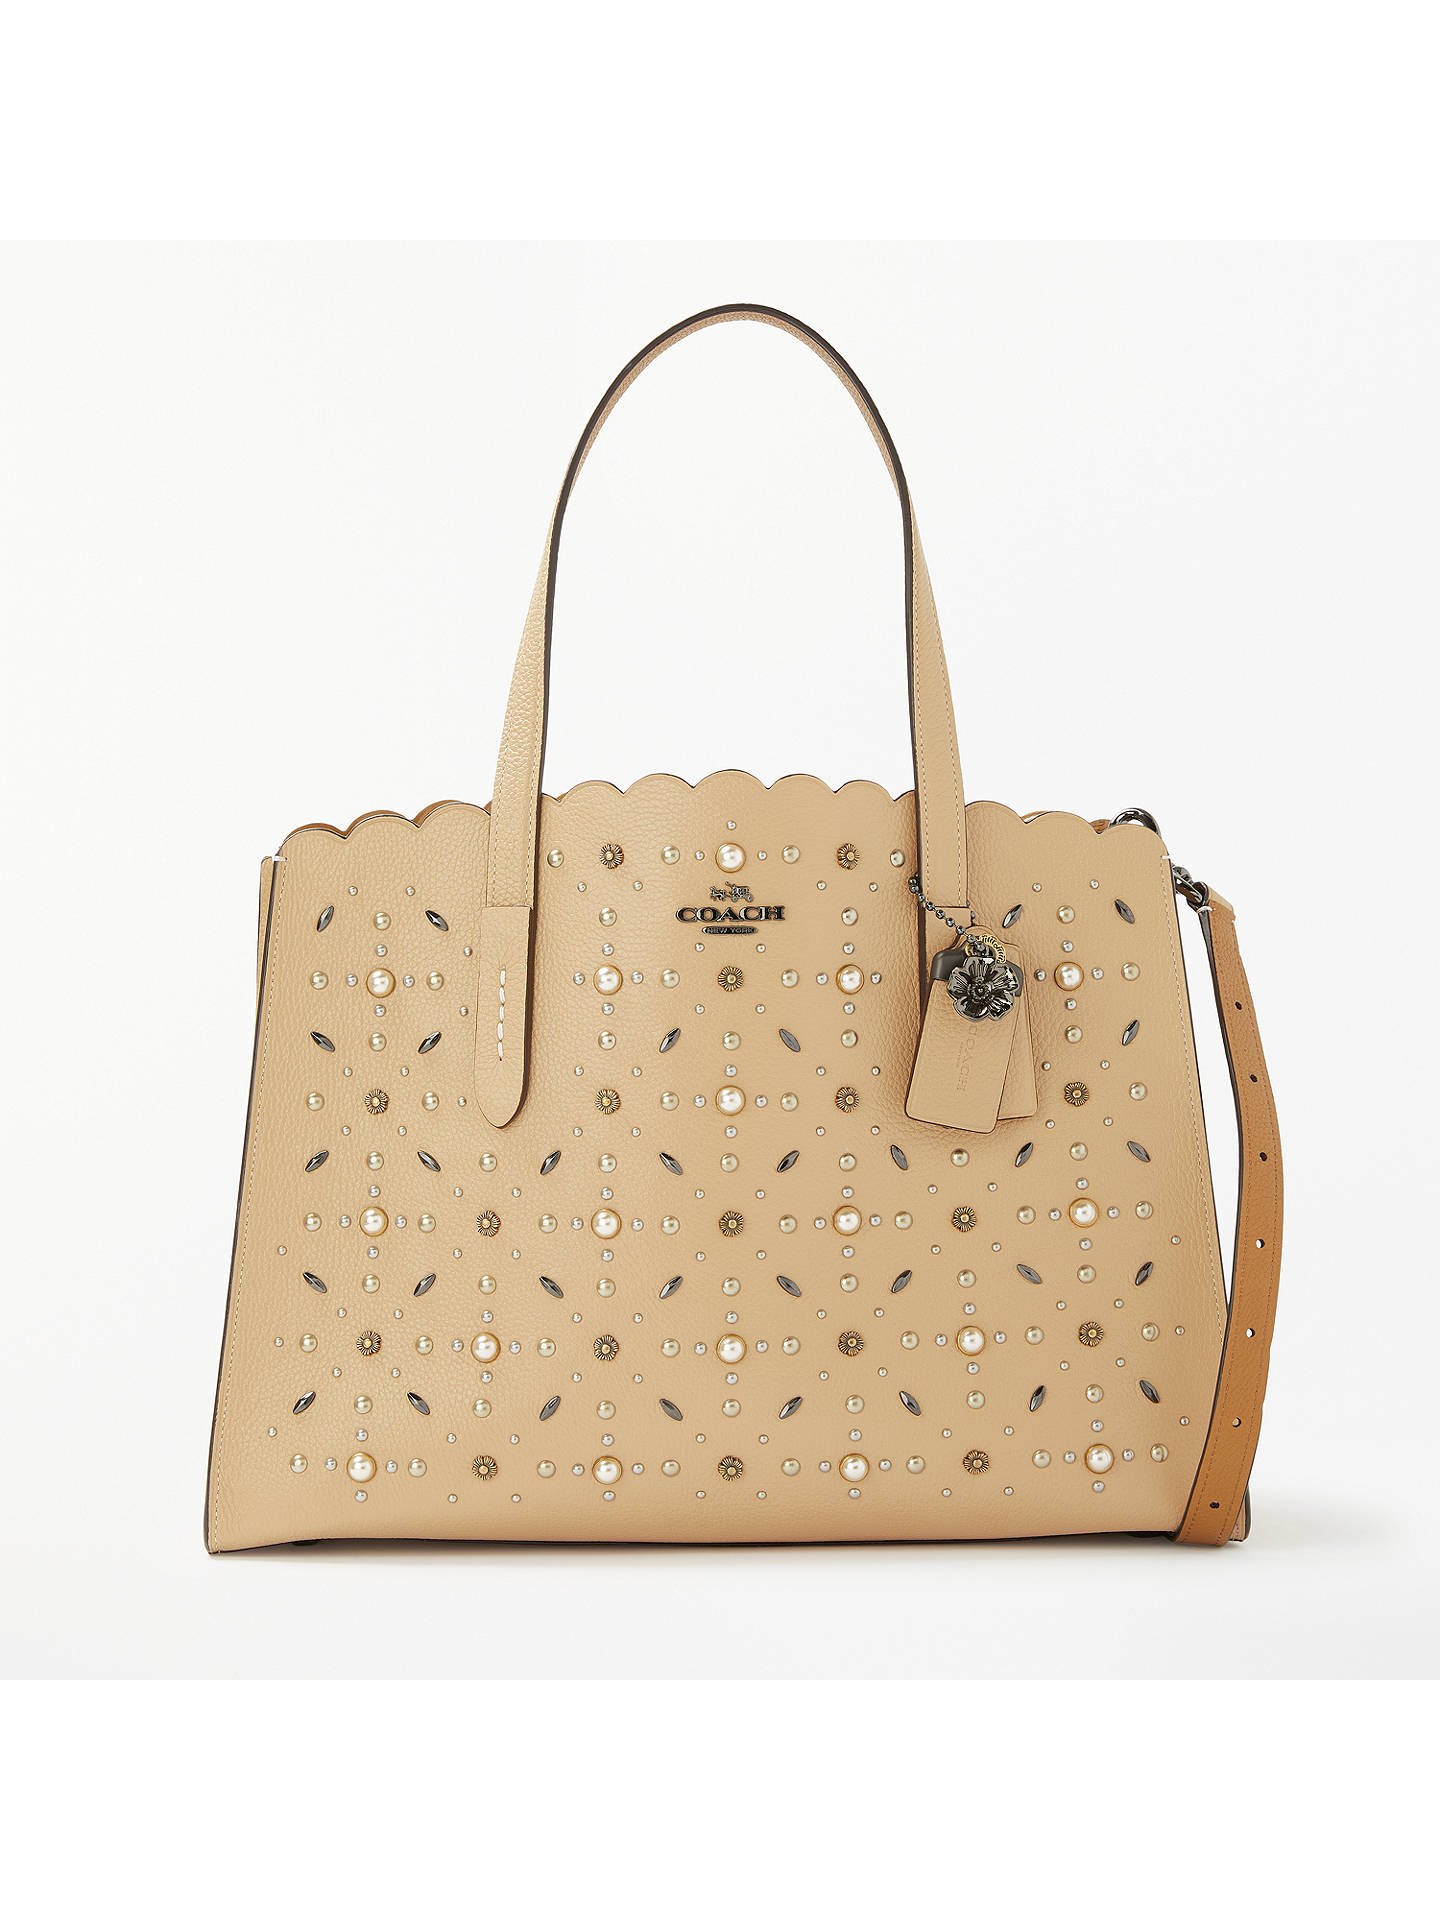 9692adce1c Buy Coach Charlie Leather Carryall Tote Bag, Beechwood Stud Online at  johnlewis.com ...